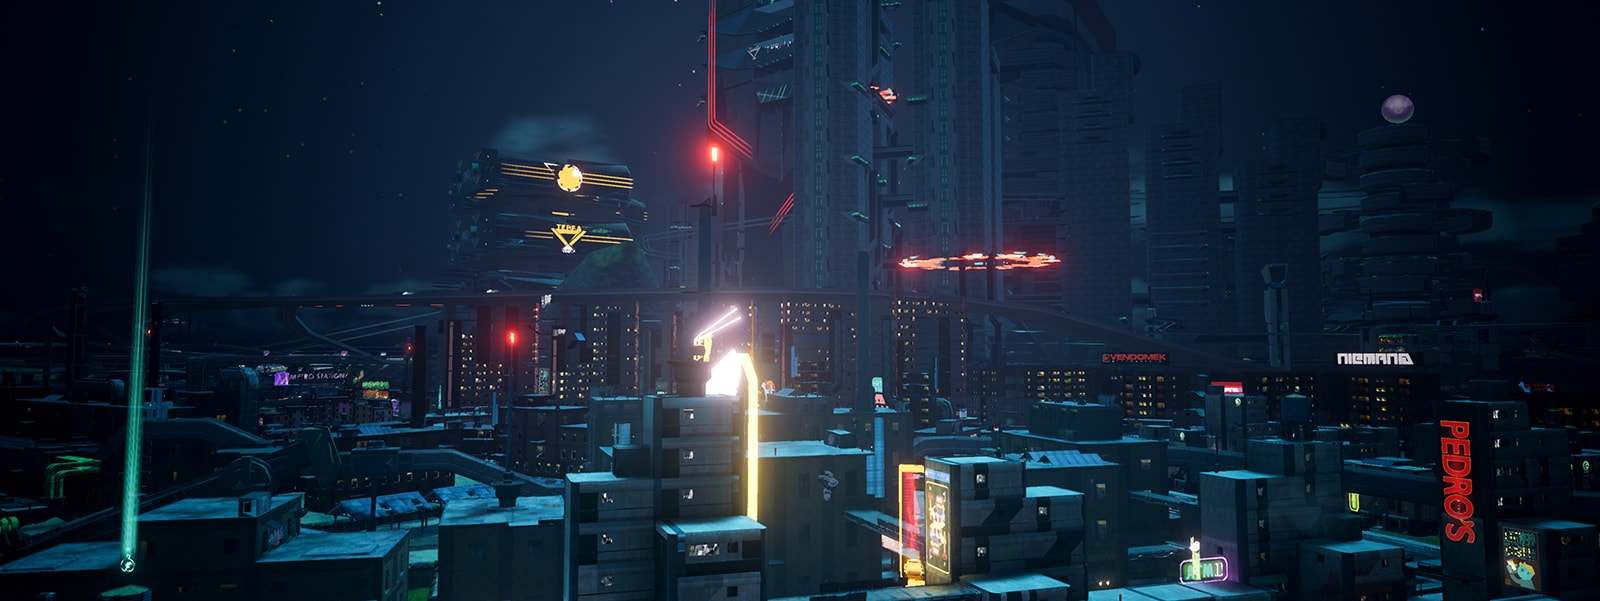 Captura de ecrã do Crackdown 3 sem HDR